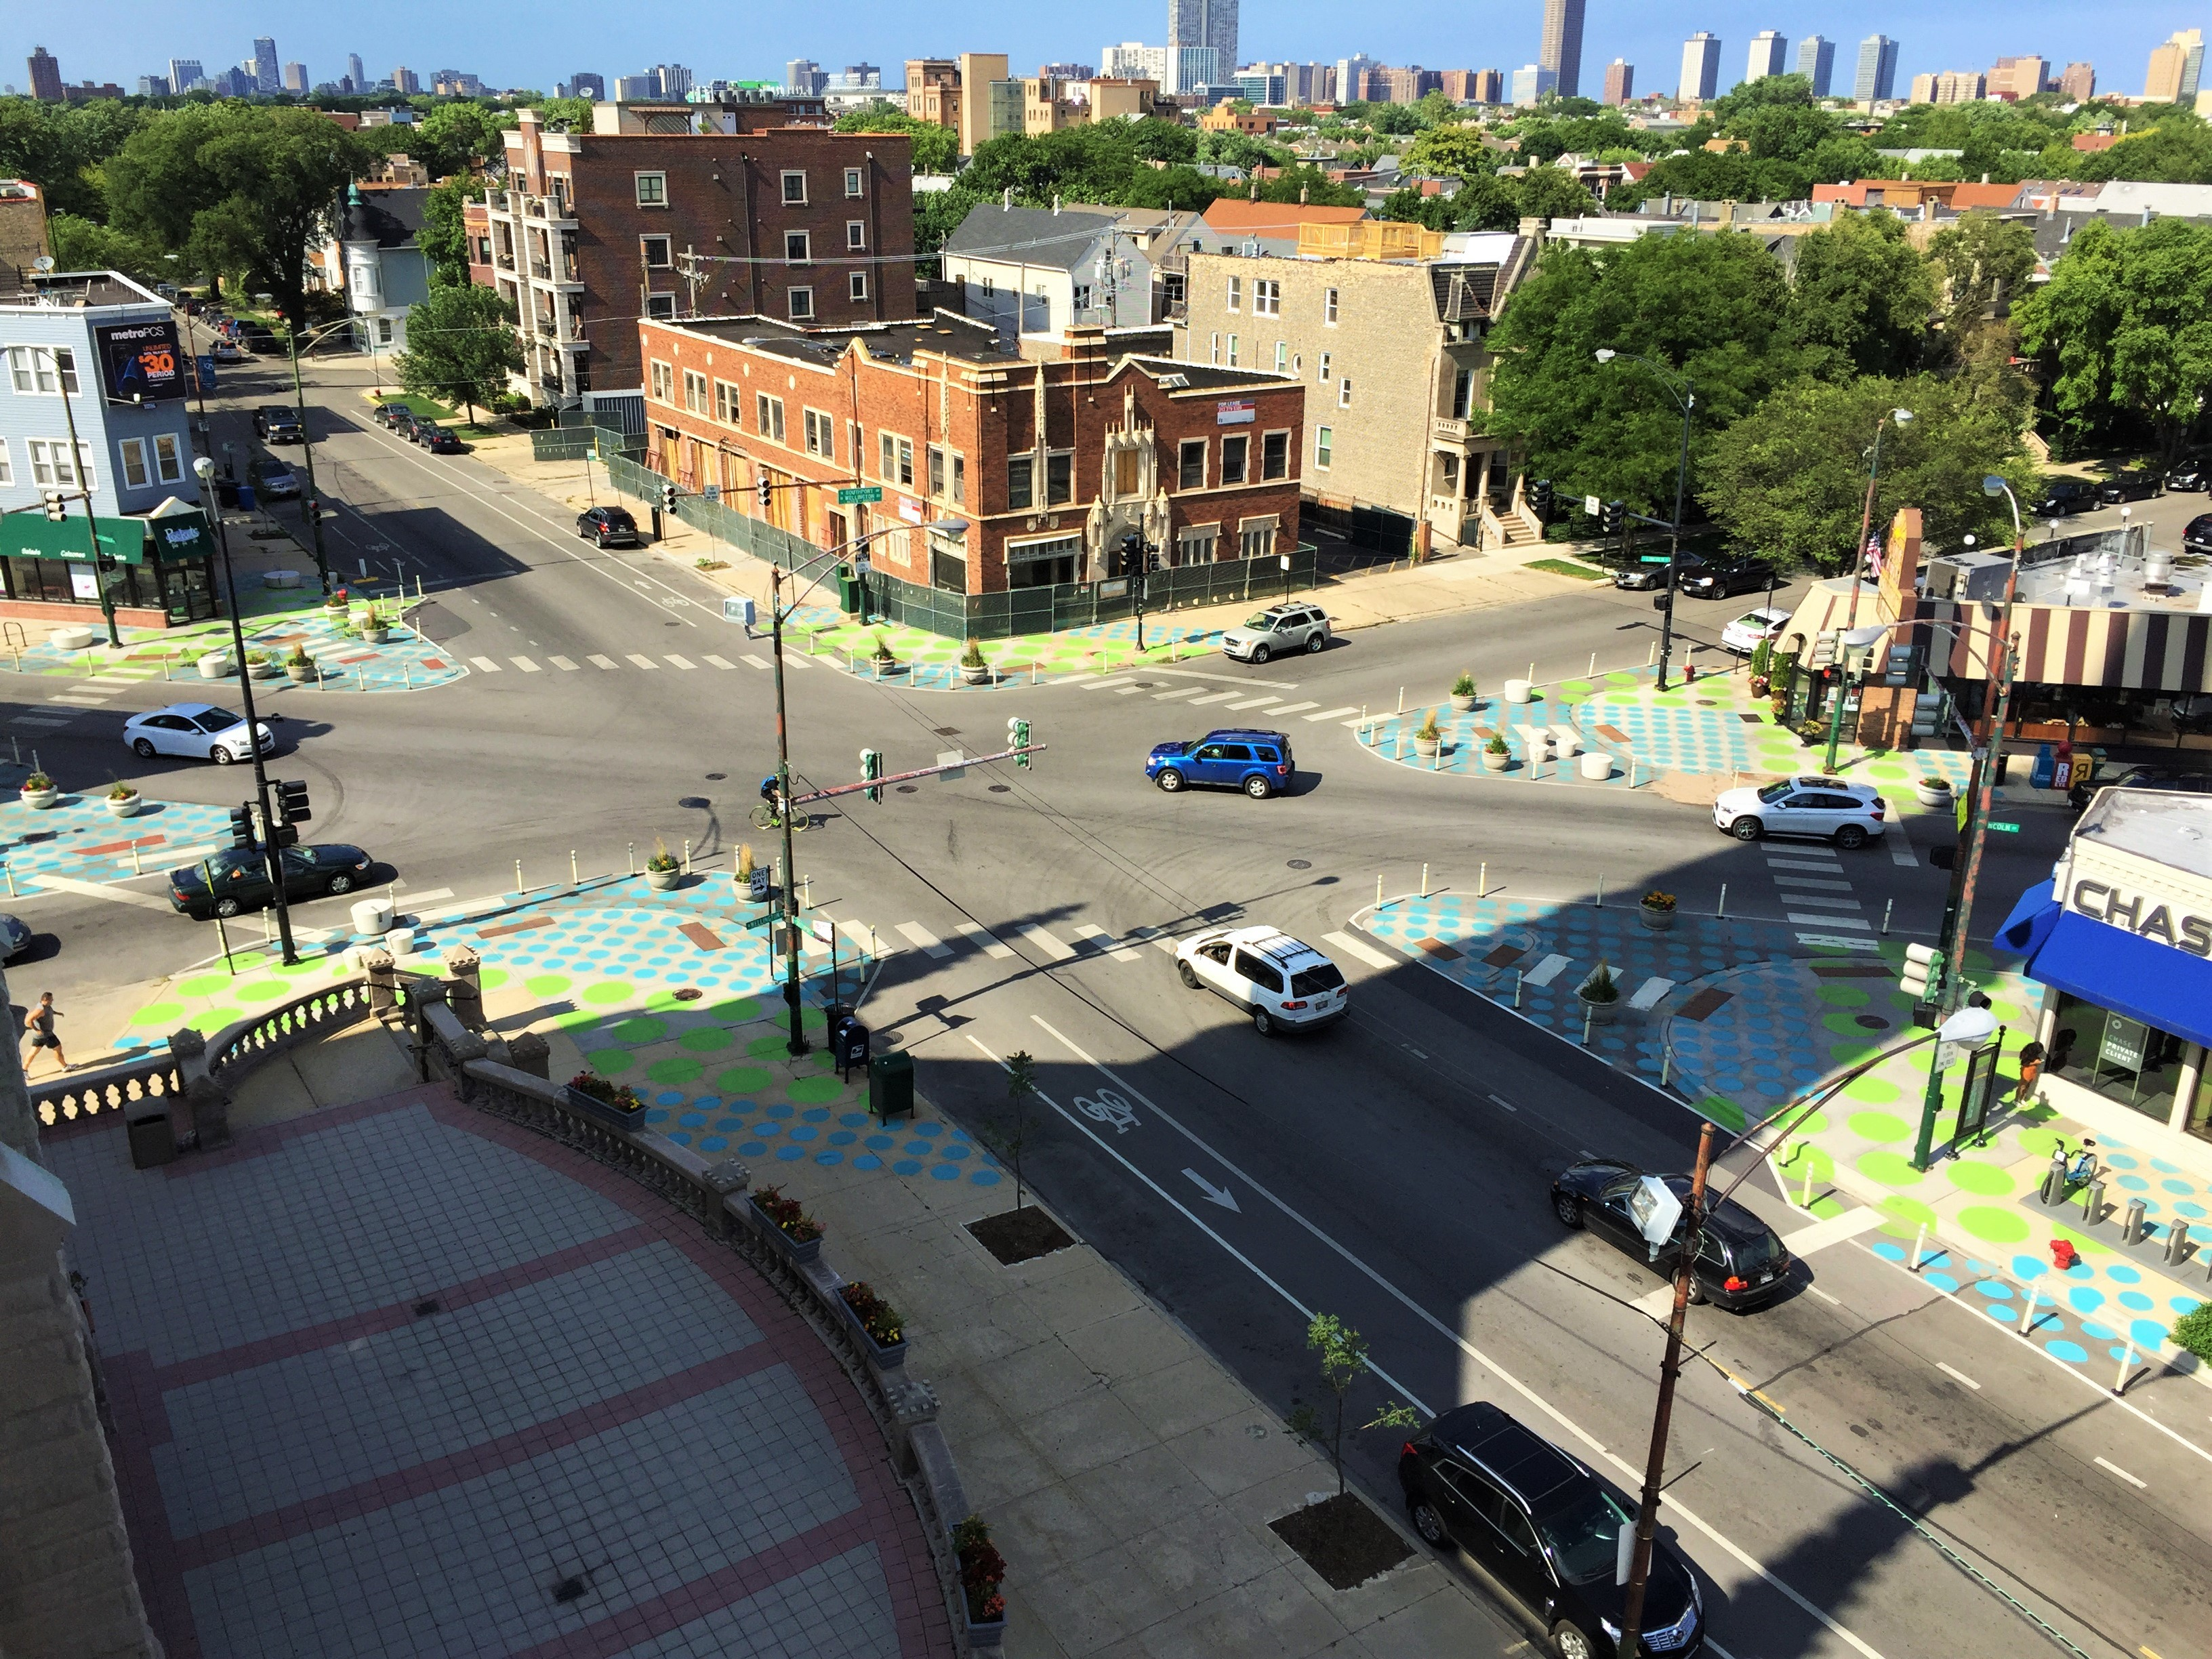 A busy intersection where several streets meet at different angles has been painted on each corner with polka-dots to create pedestrian plazas.